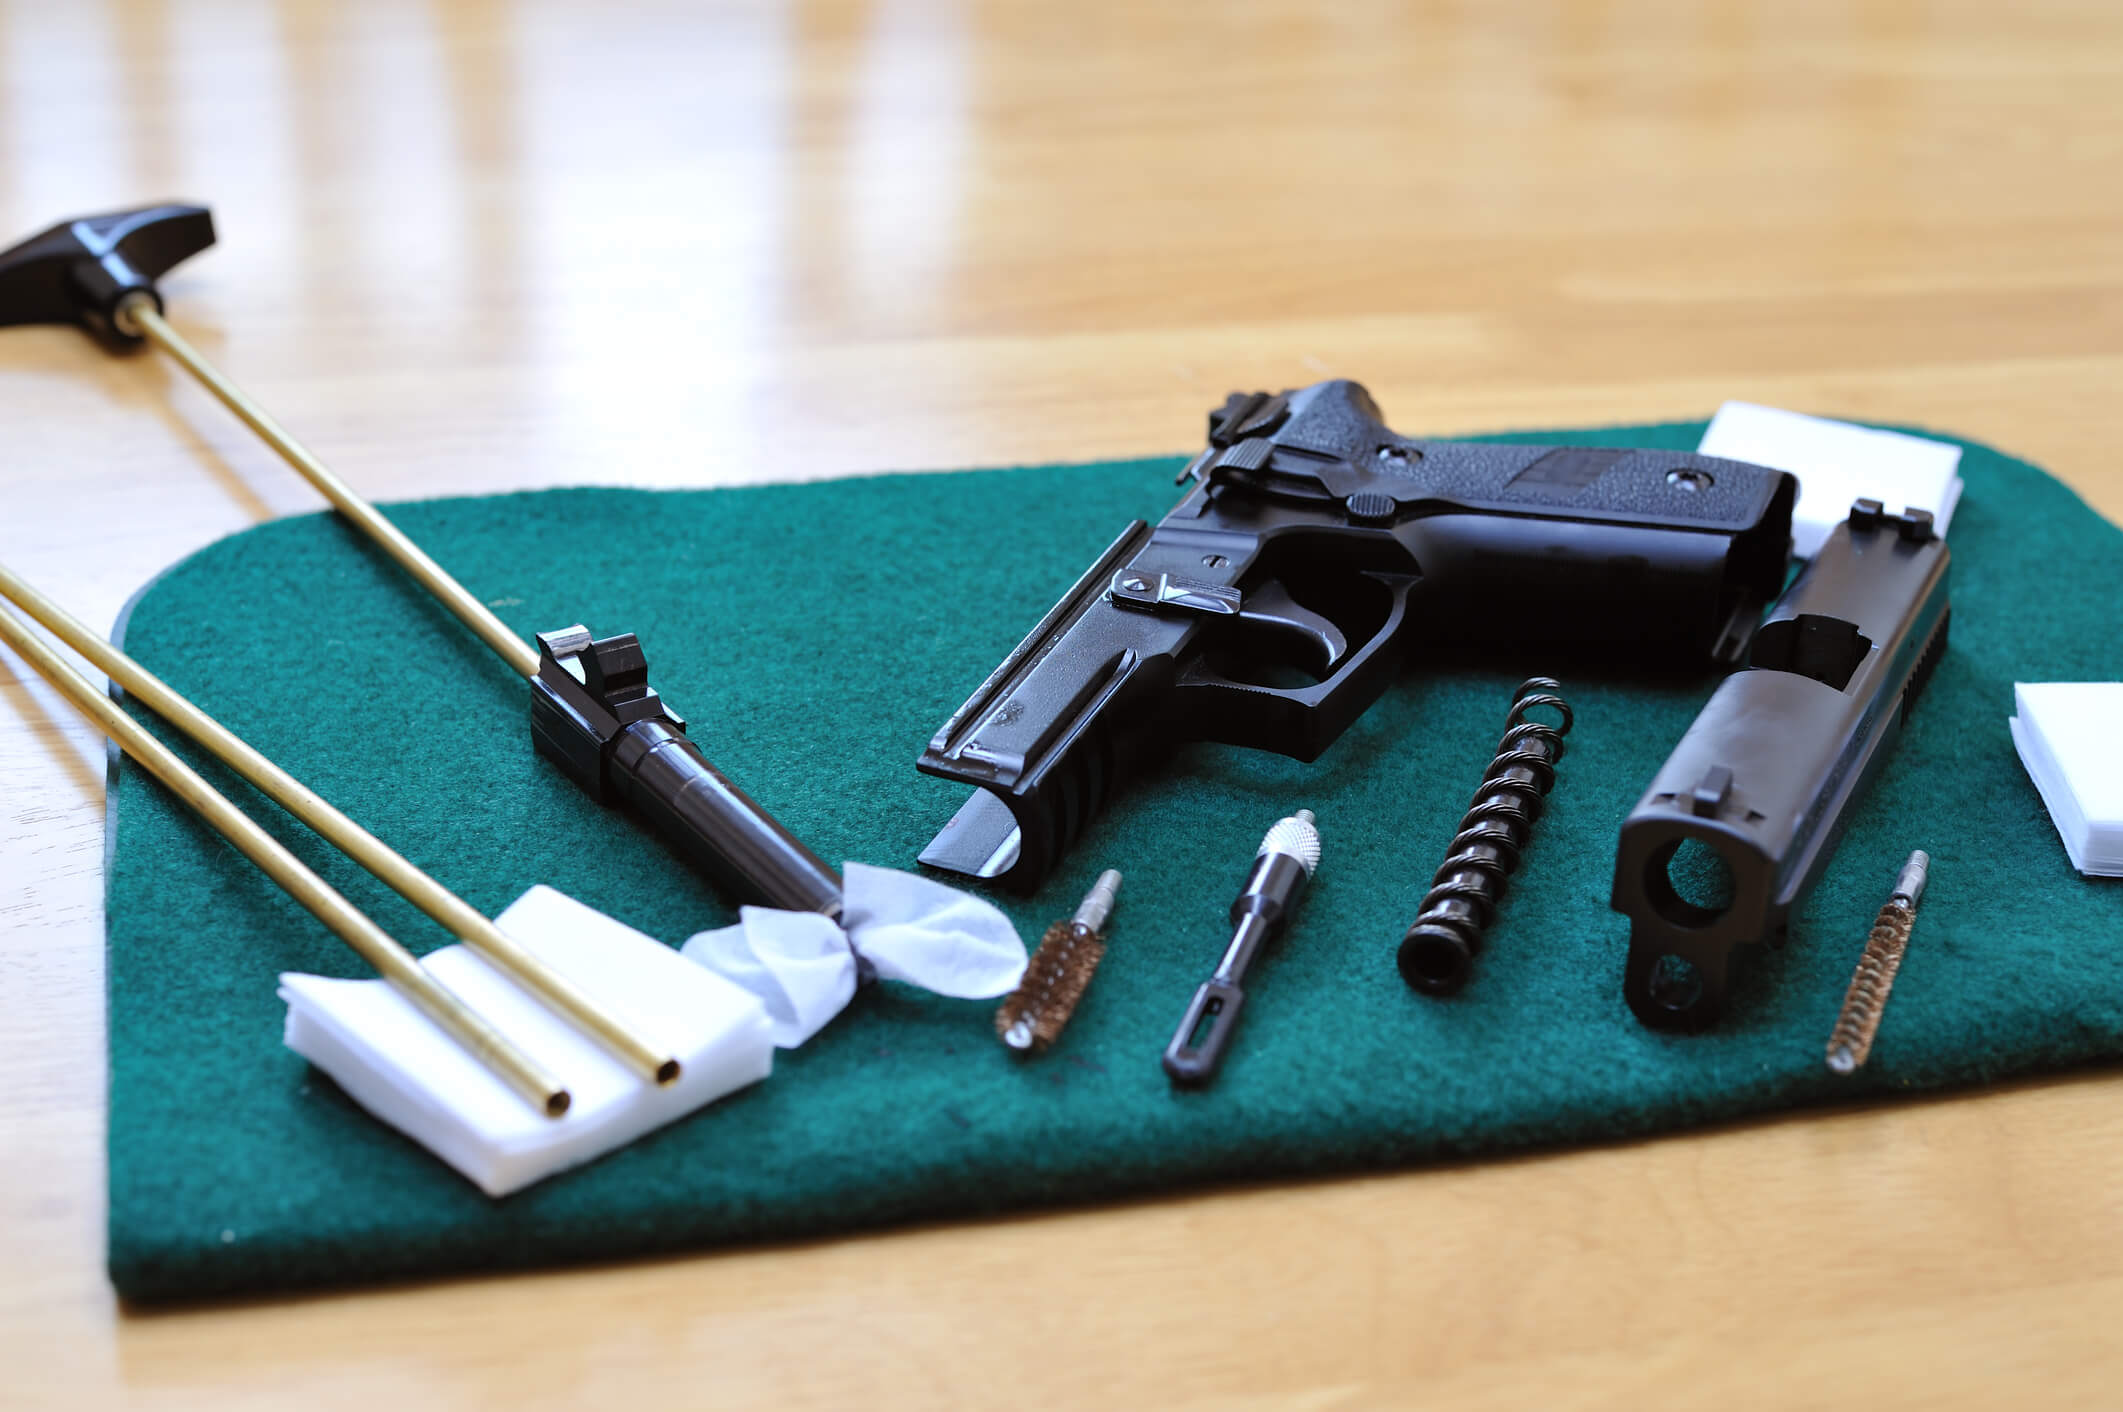 We Provide Gunsmithing Services